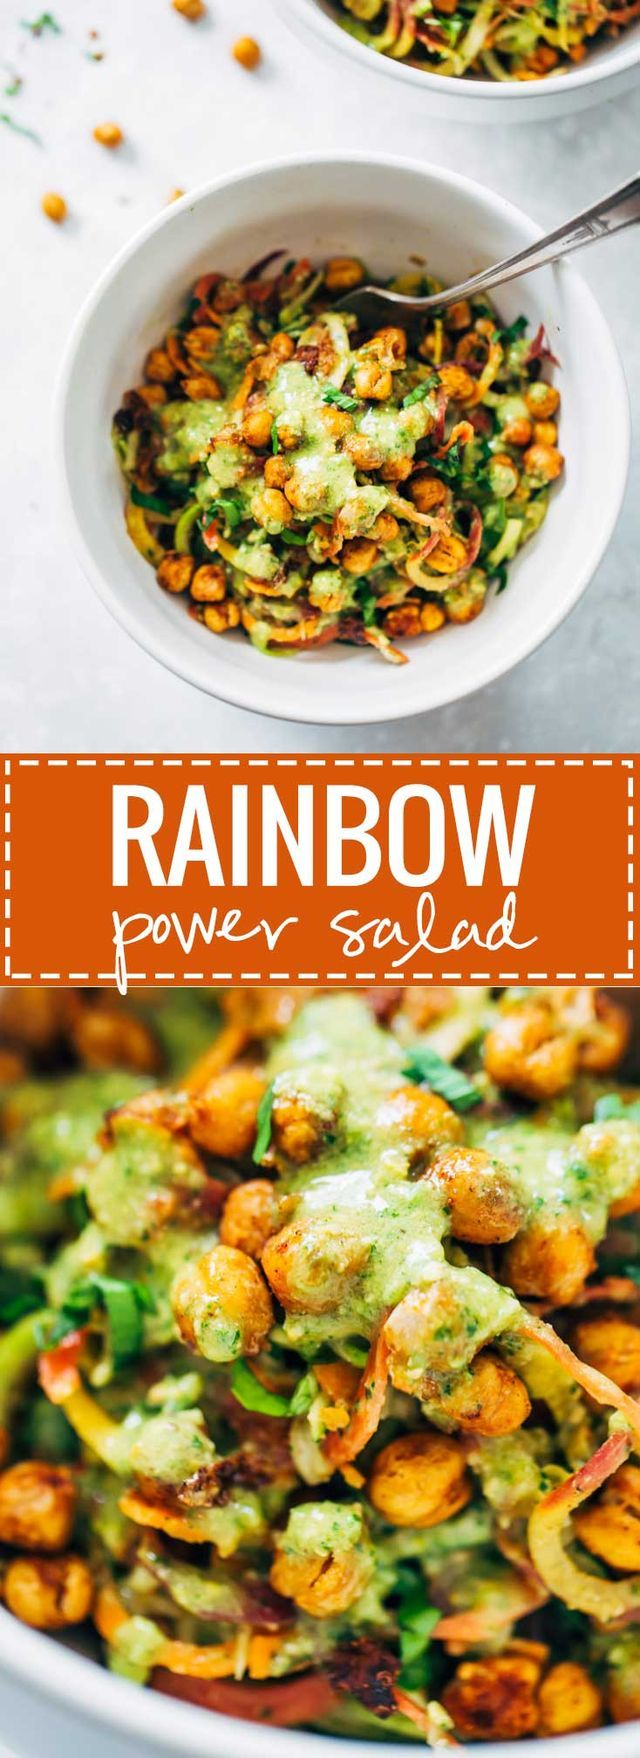 Color! Texture! Beautiful food in a bowl! There's so much good going on here, guys. The carrots and zucchini get all ribboned up into shreds, and the chickpeas get roasted with a little spice, and jus